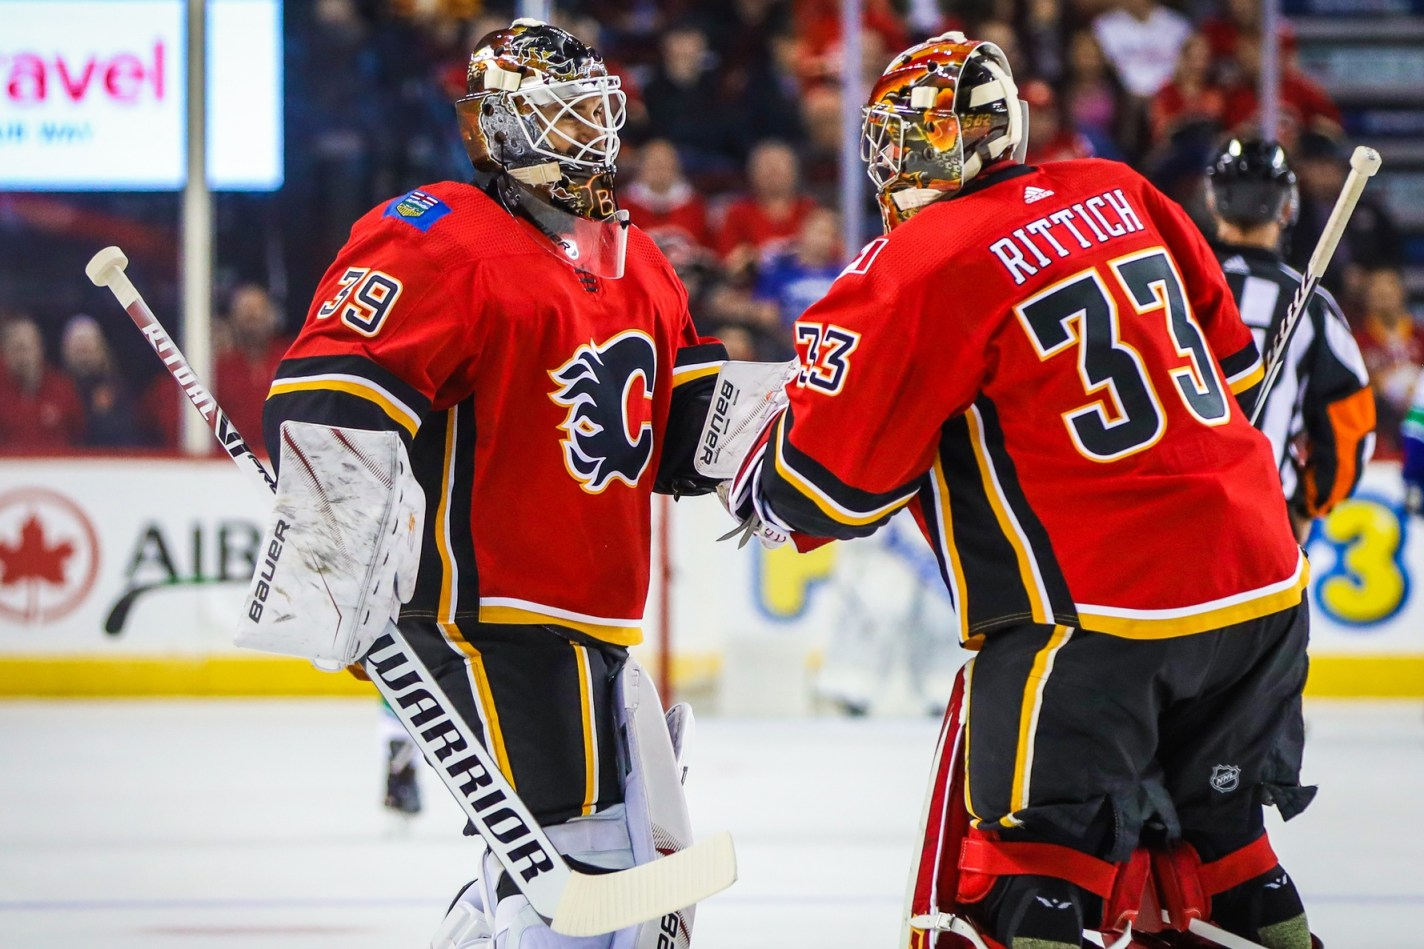 Talbot and Rittich